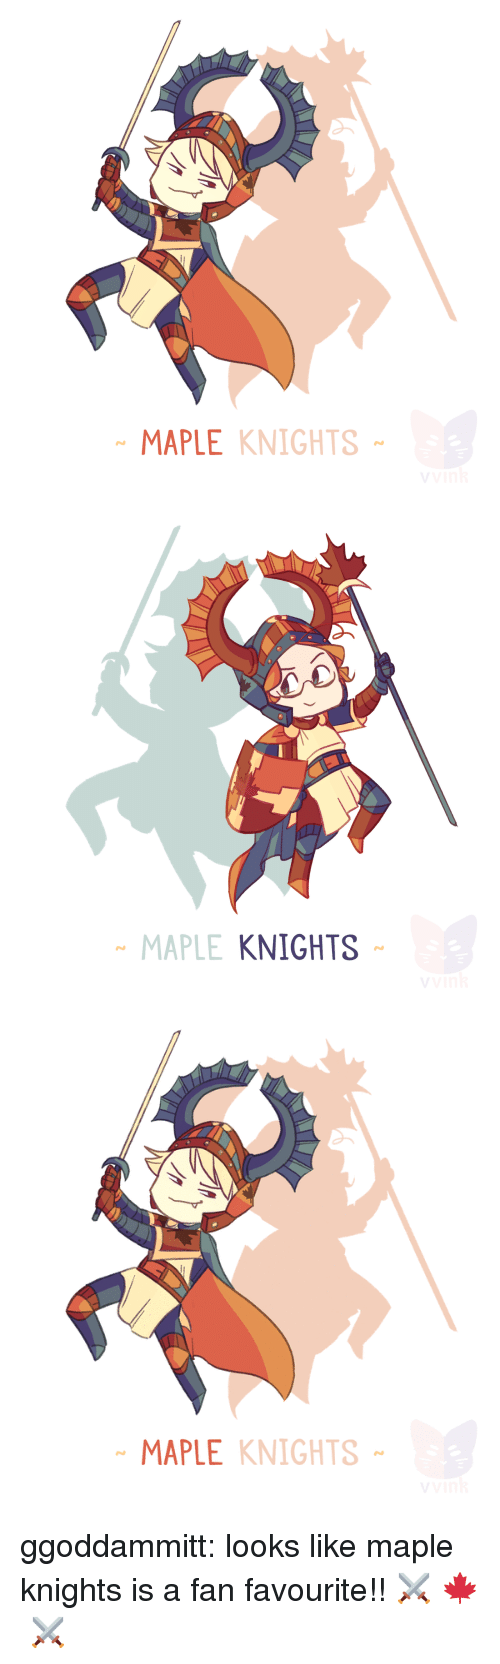 Target, Tumblr, and Blog: MAPLE KNIGHTS   MAPLE  KNIGHTS   MAPLE KNIGHTS ggoddammitt:  looks like maple knights is a fan favourite!! ⚔  🍁 ⚔